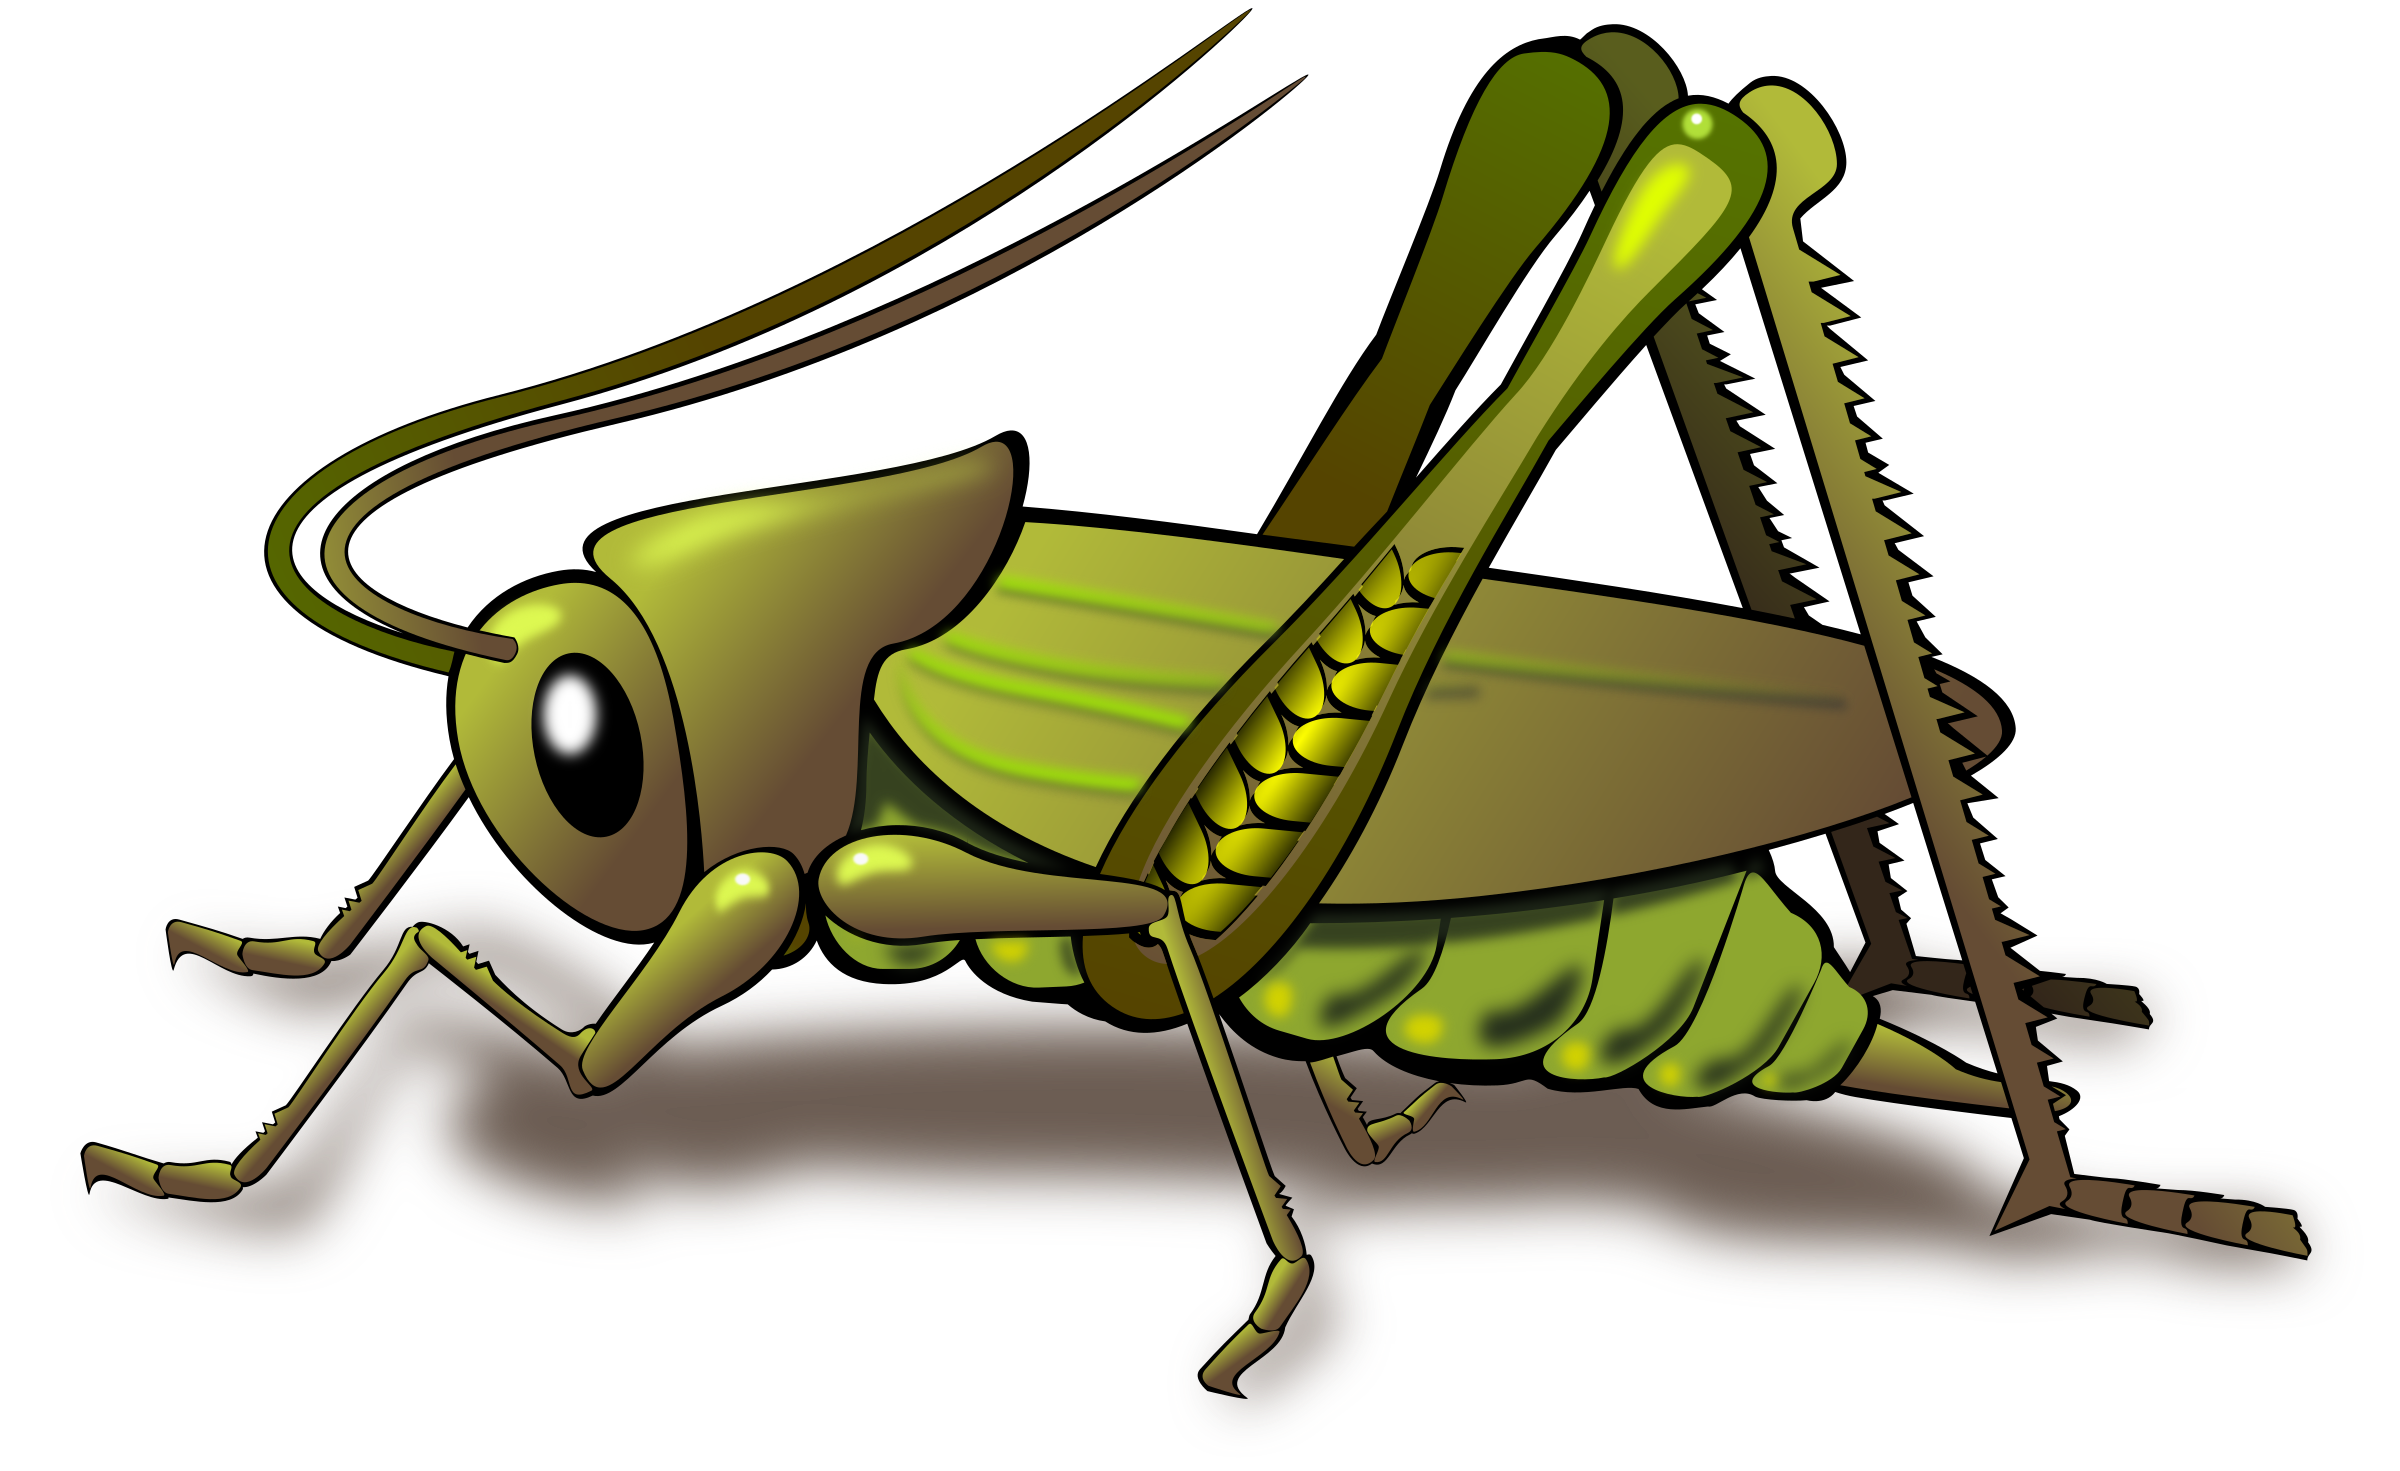 image library stock Grasshopper clipart transparent. Cricket insect png images